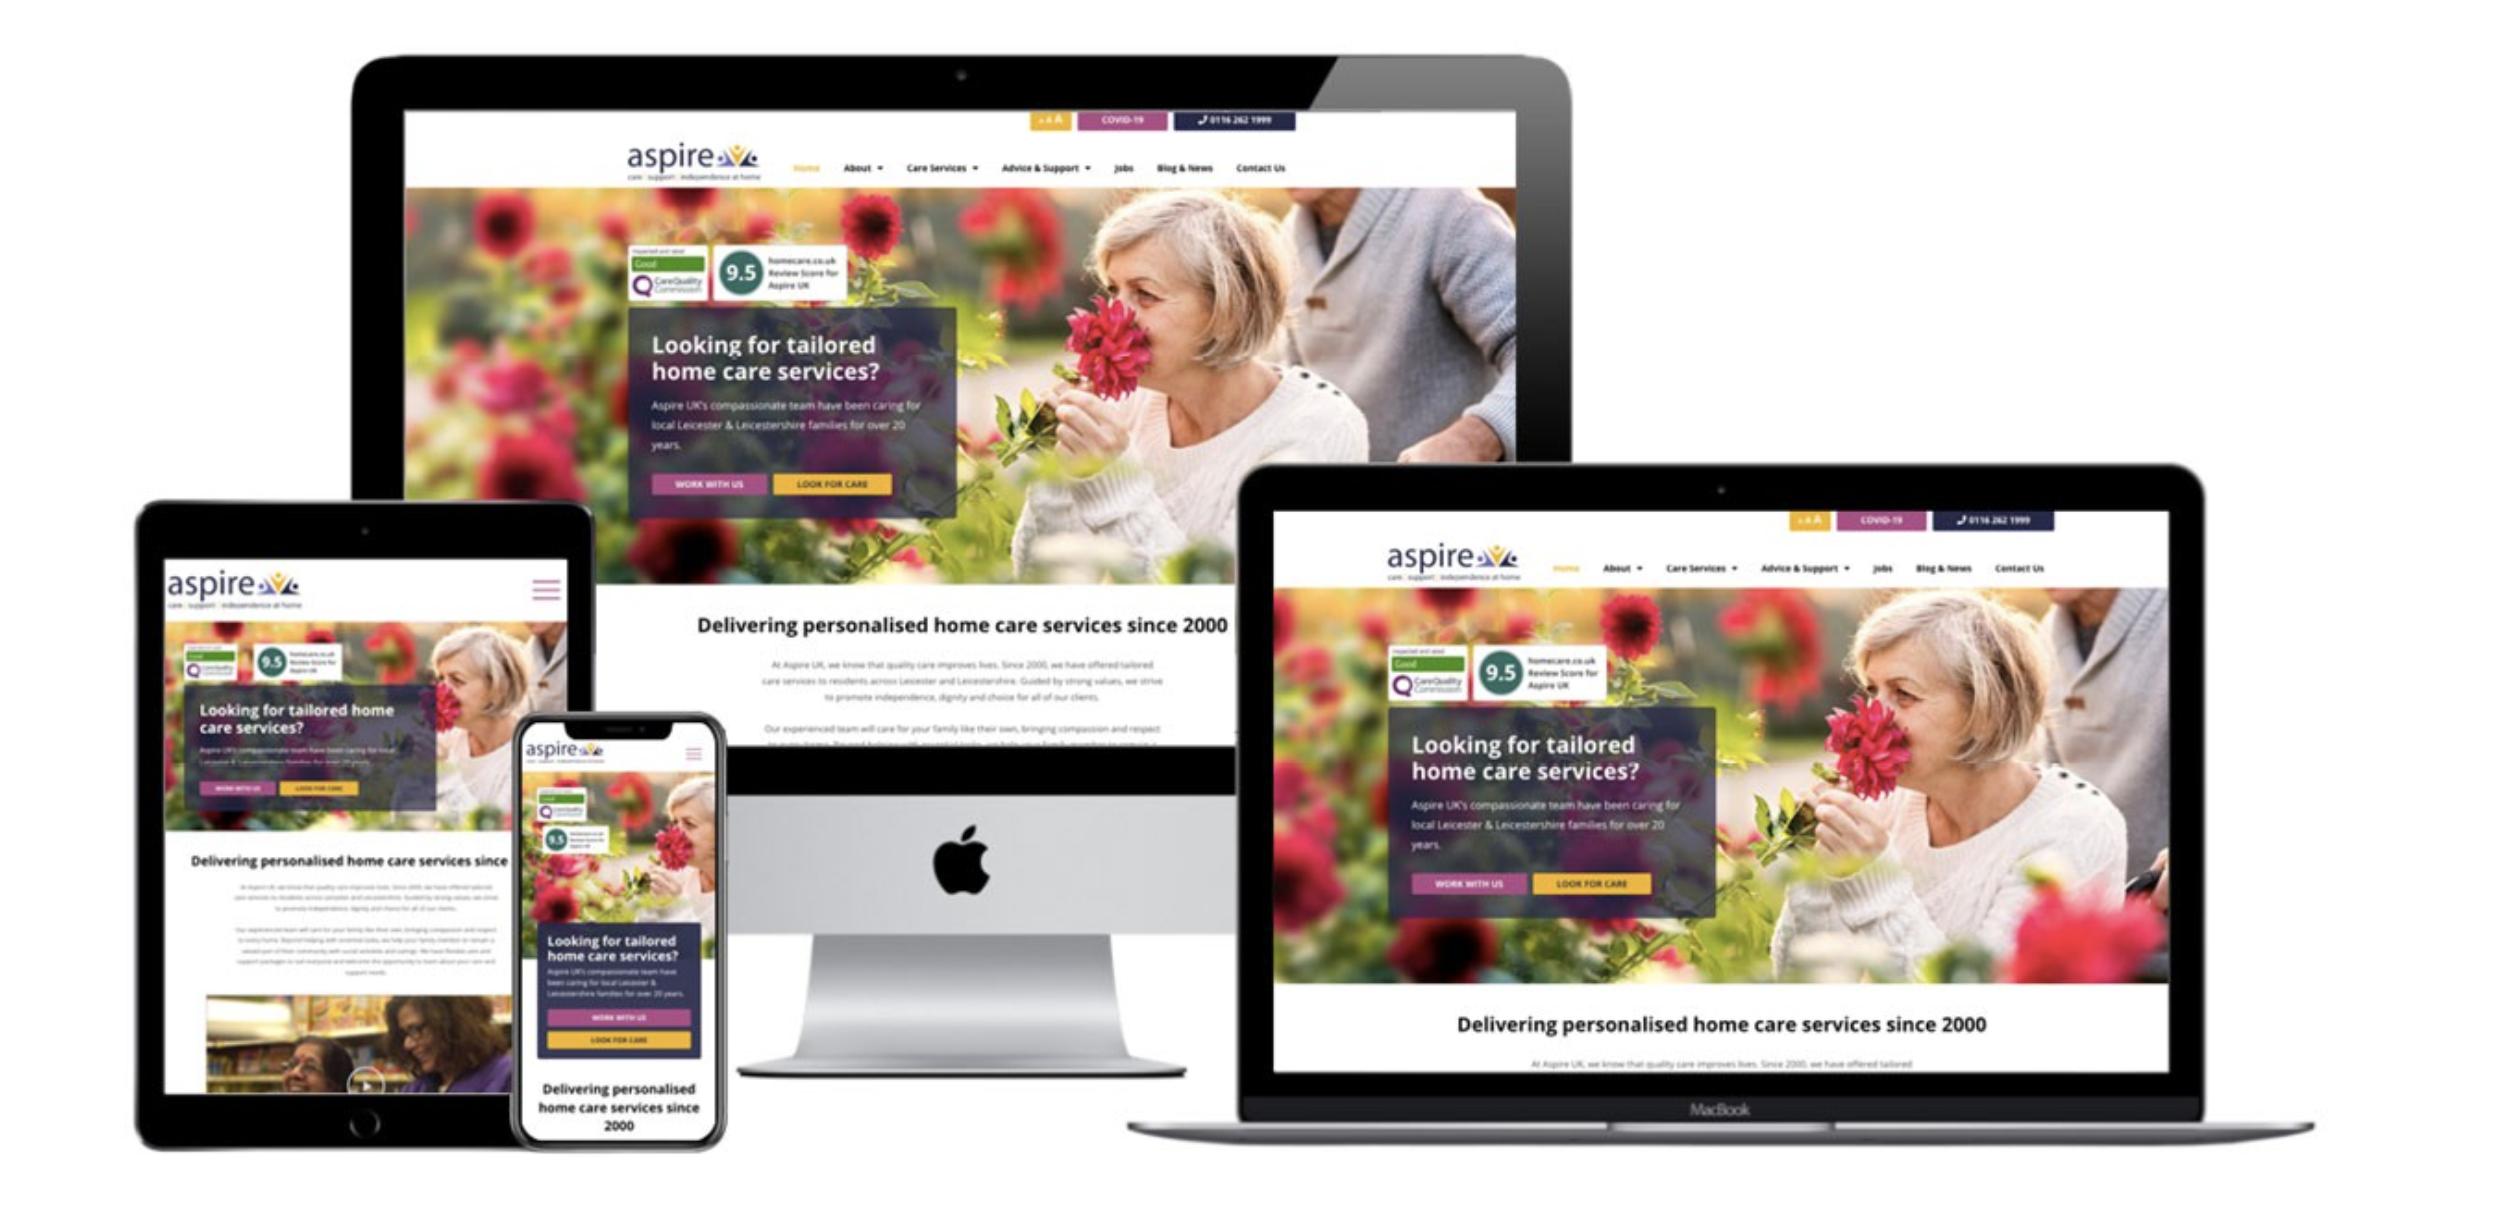 5 Website Designs to Inspire Your Own